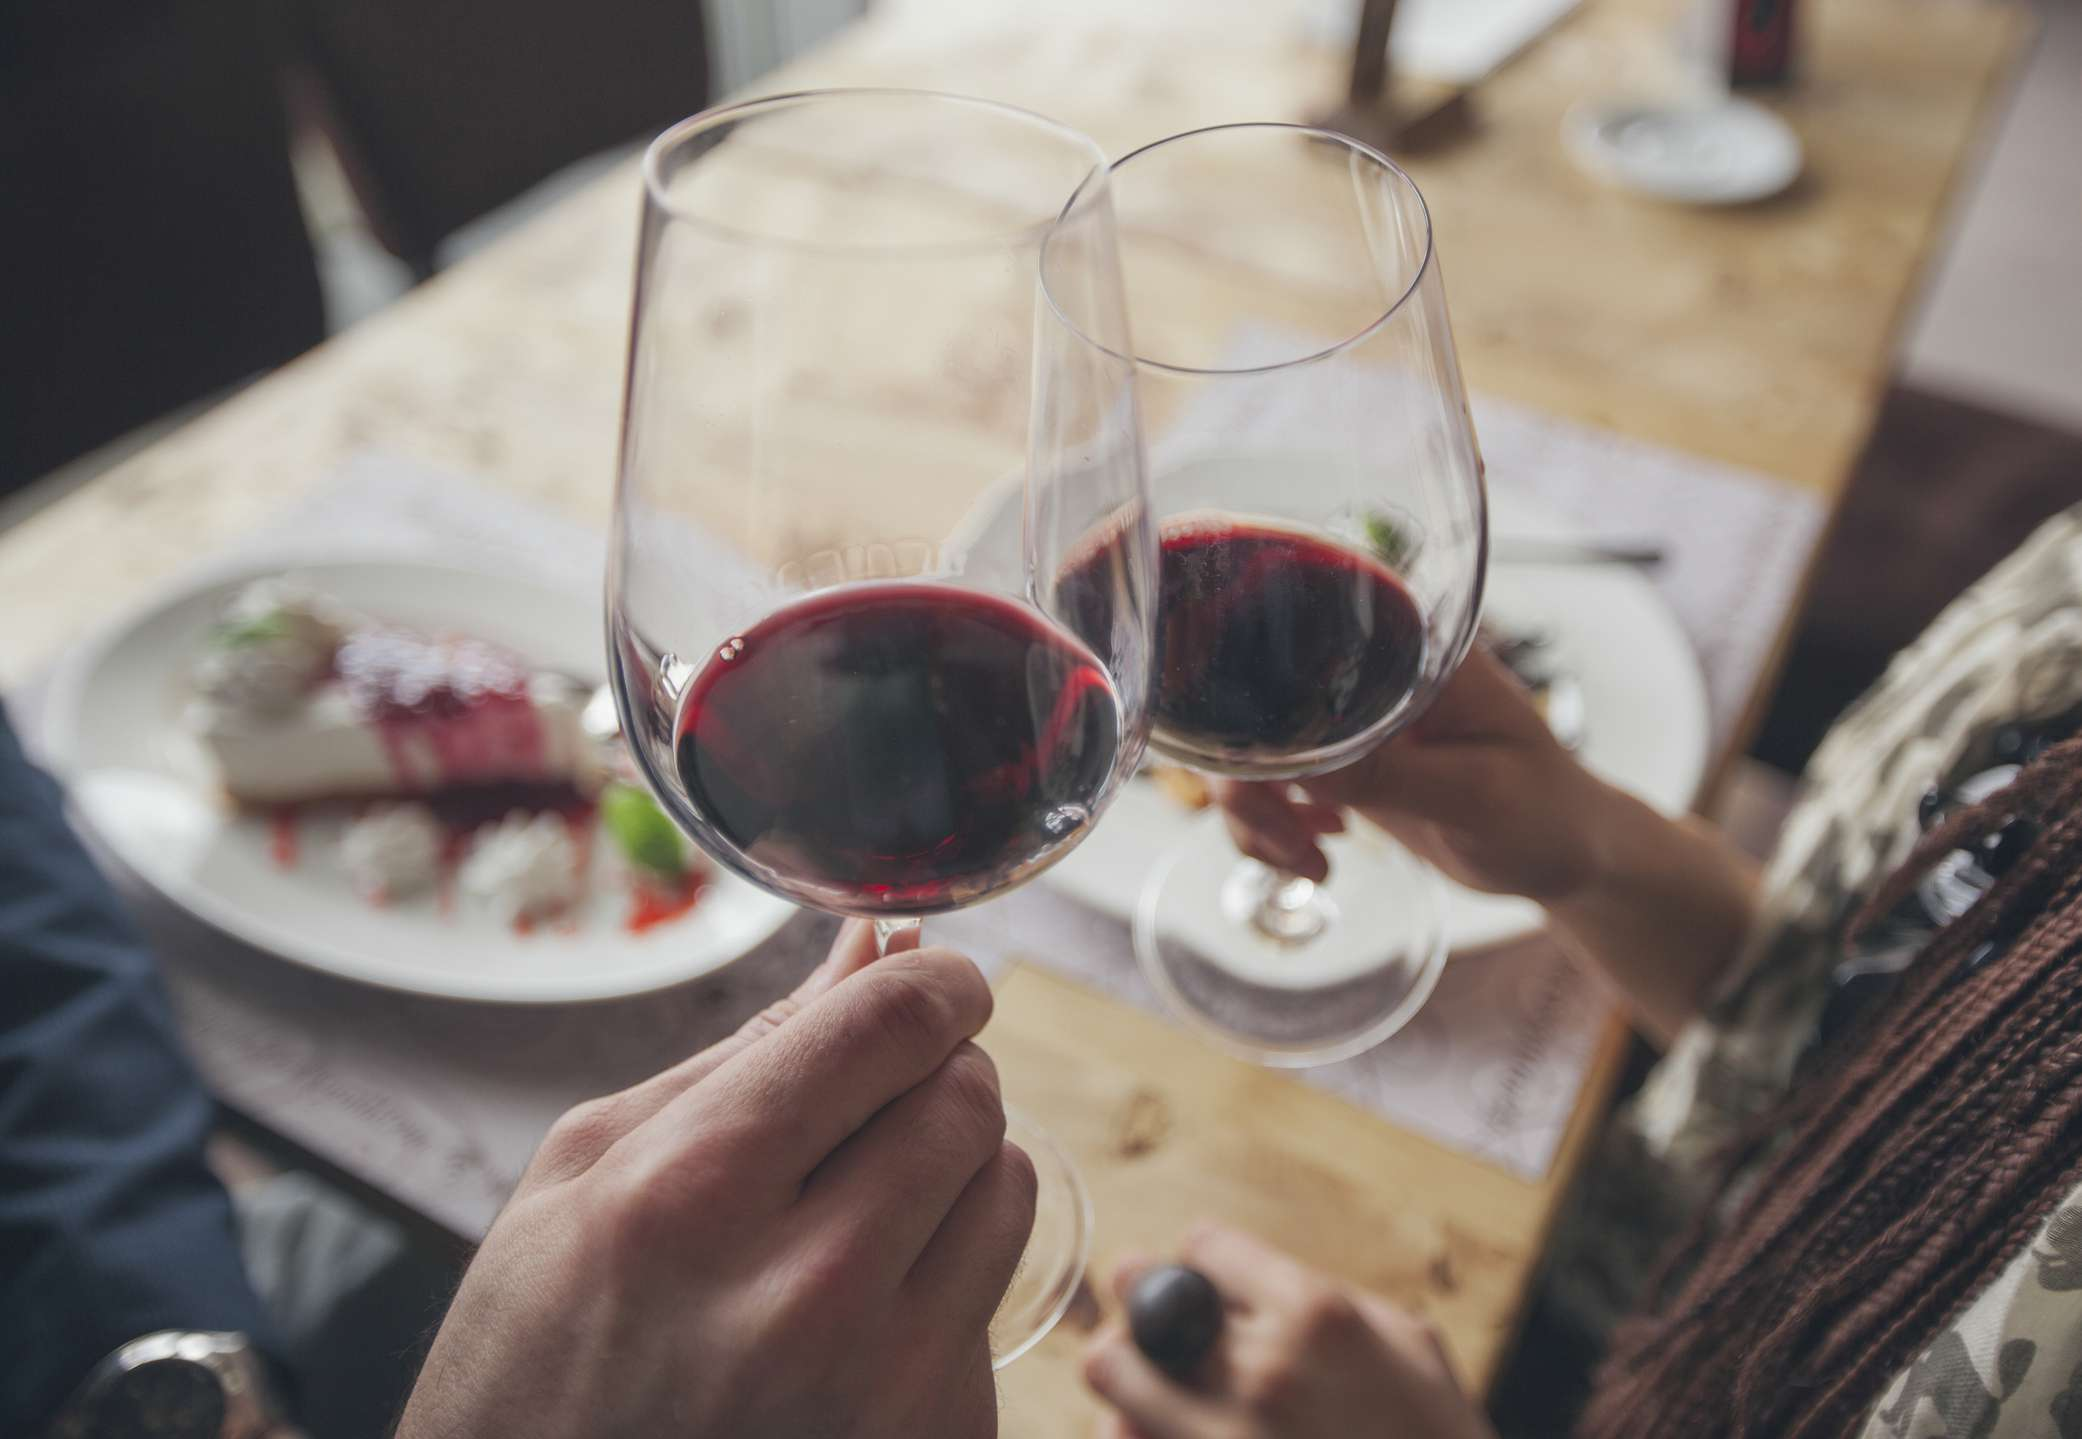 Red wine held by two people in glasses.